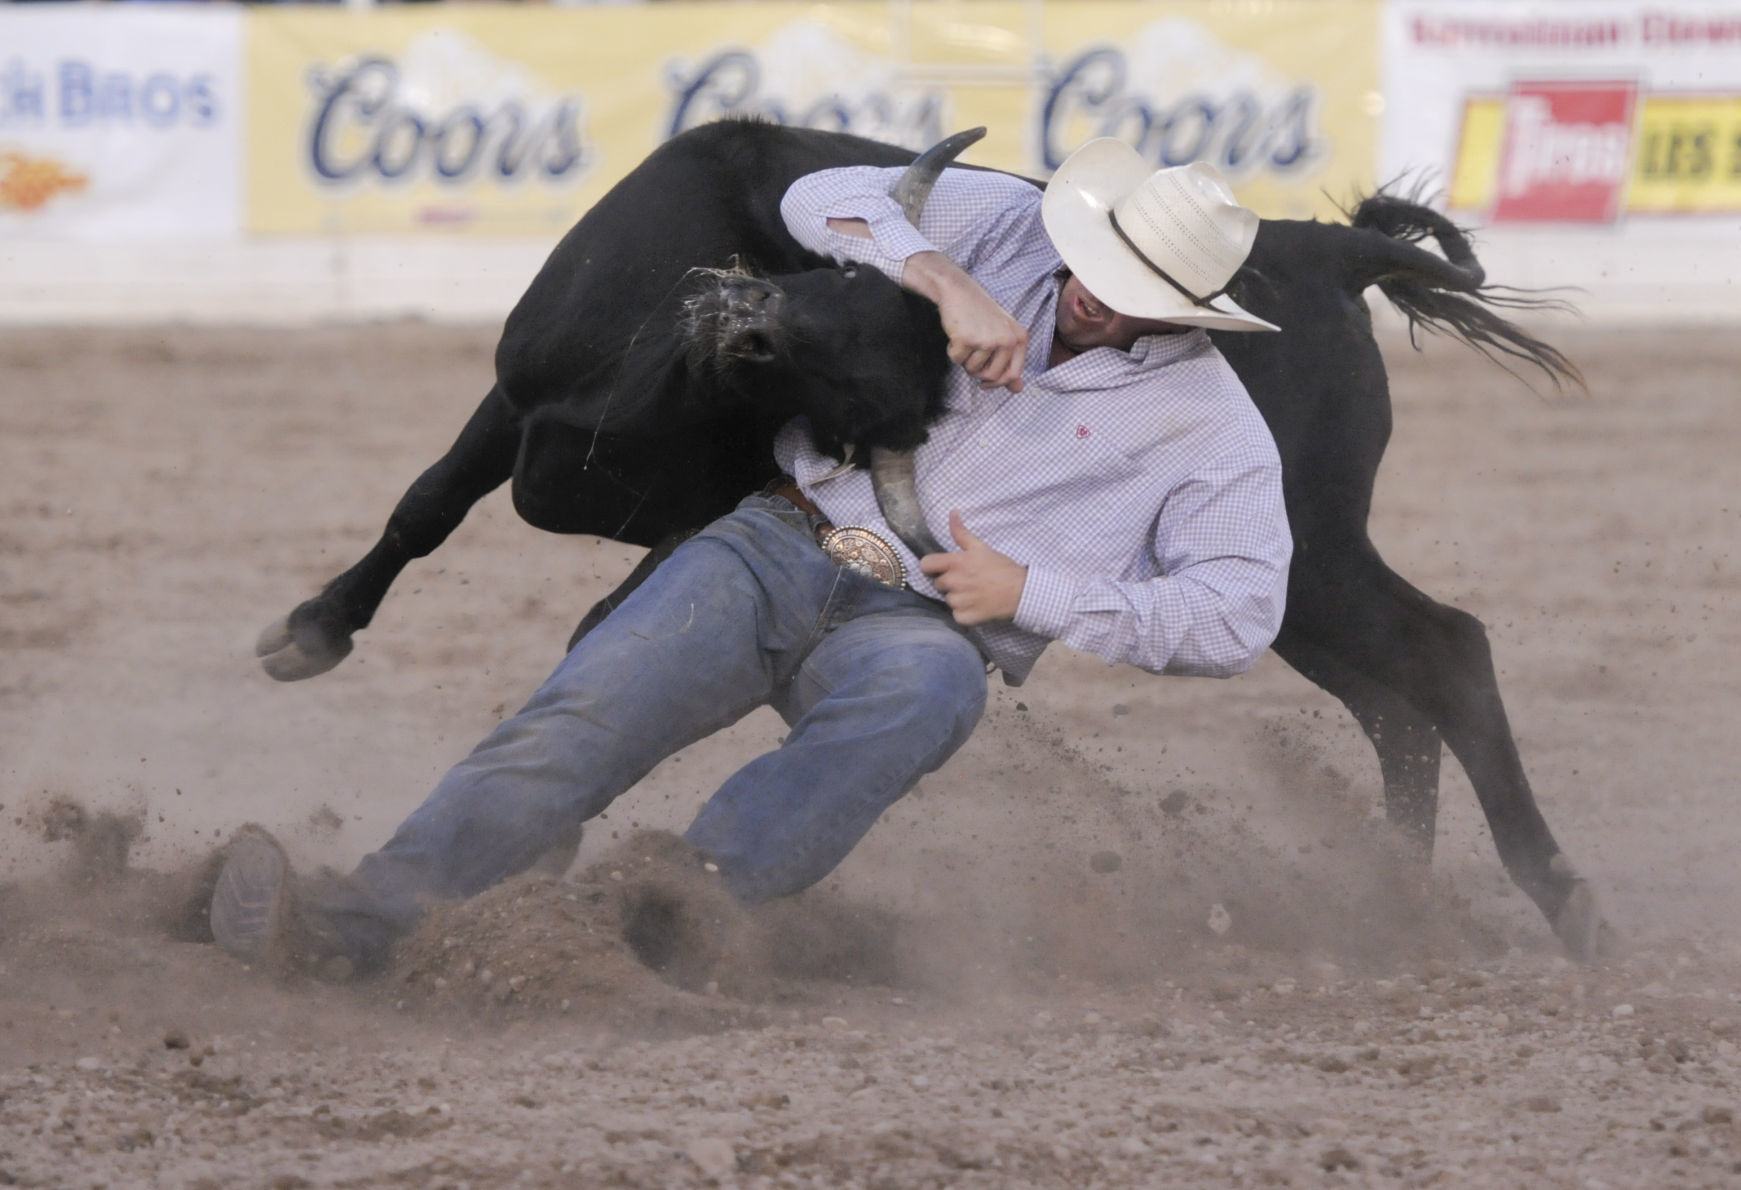 Caldwell Night Rodeo, named one of best in the U.S., gears up for 84th year   Idaho Press